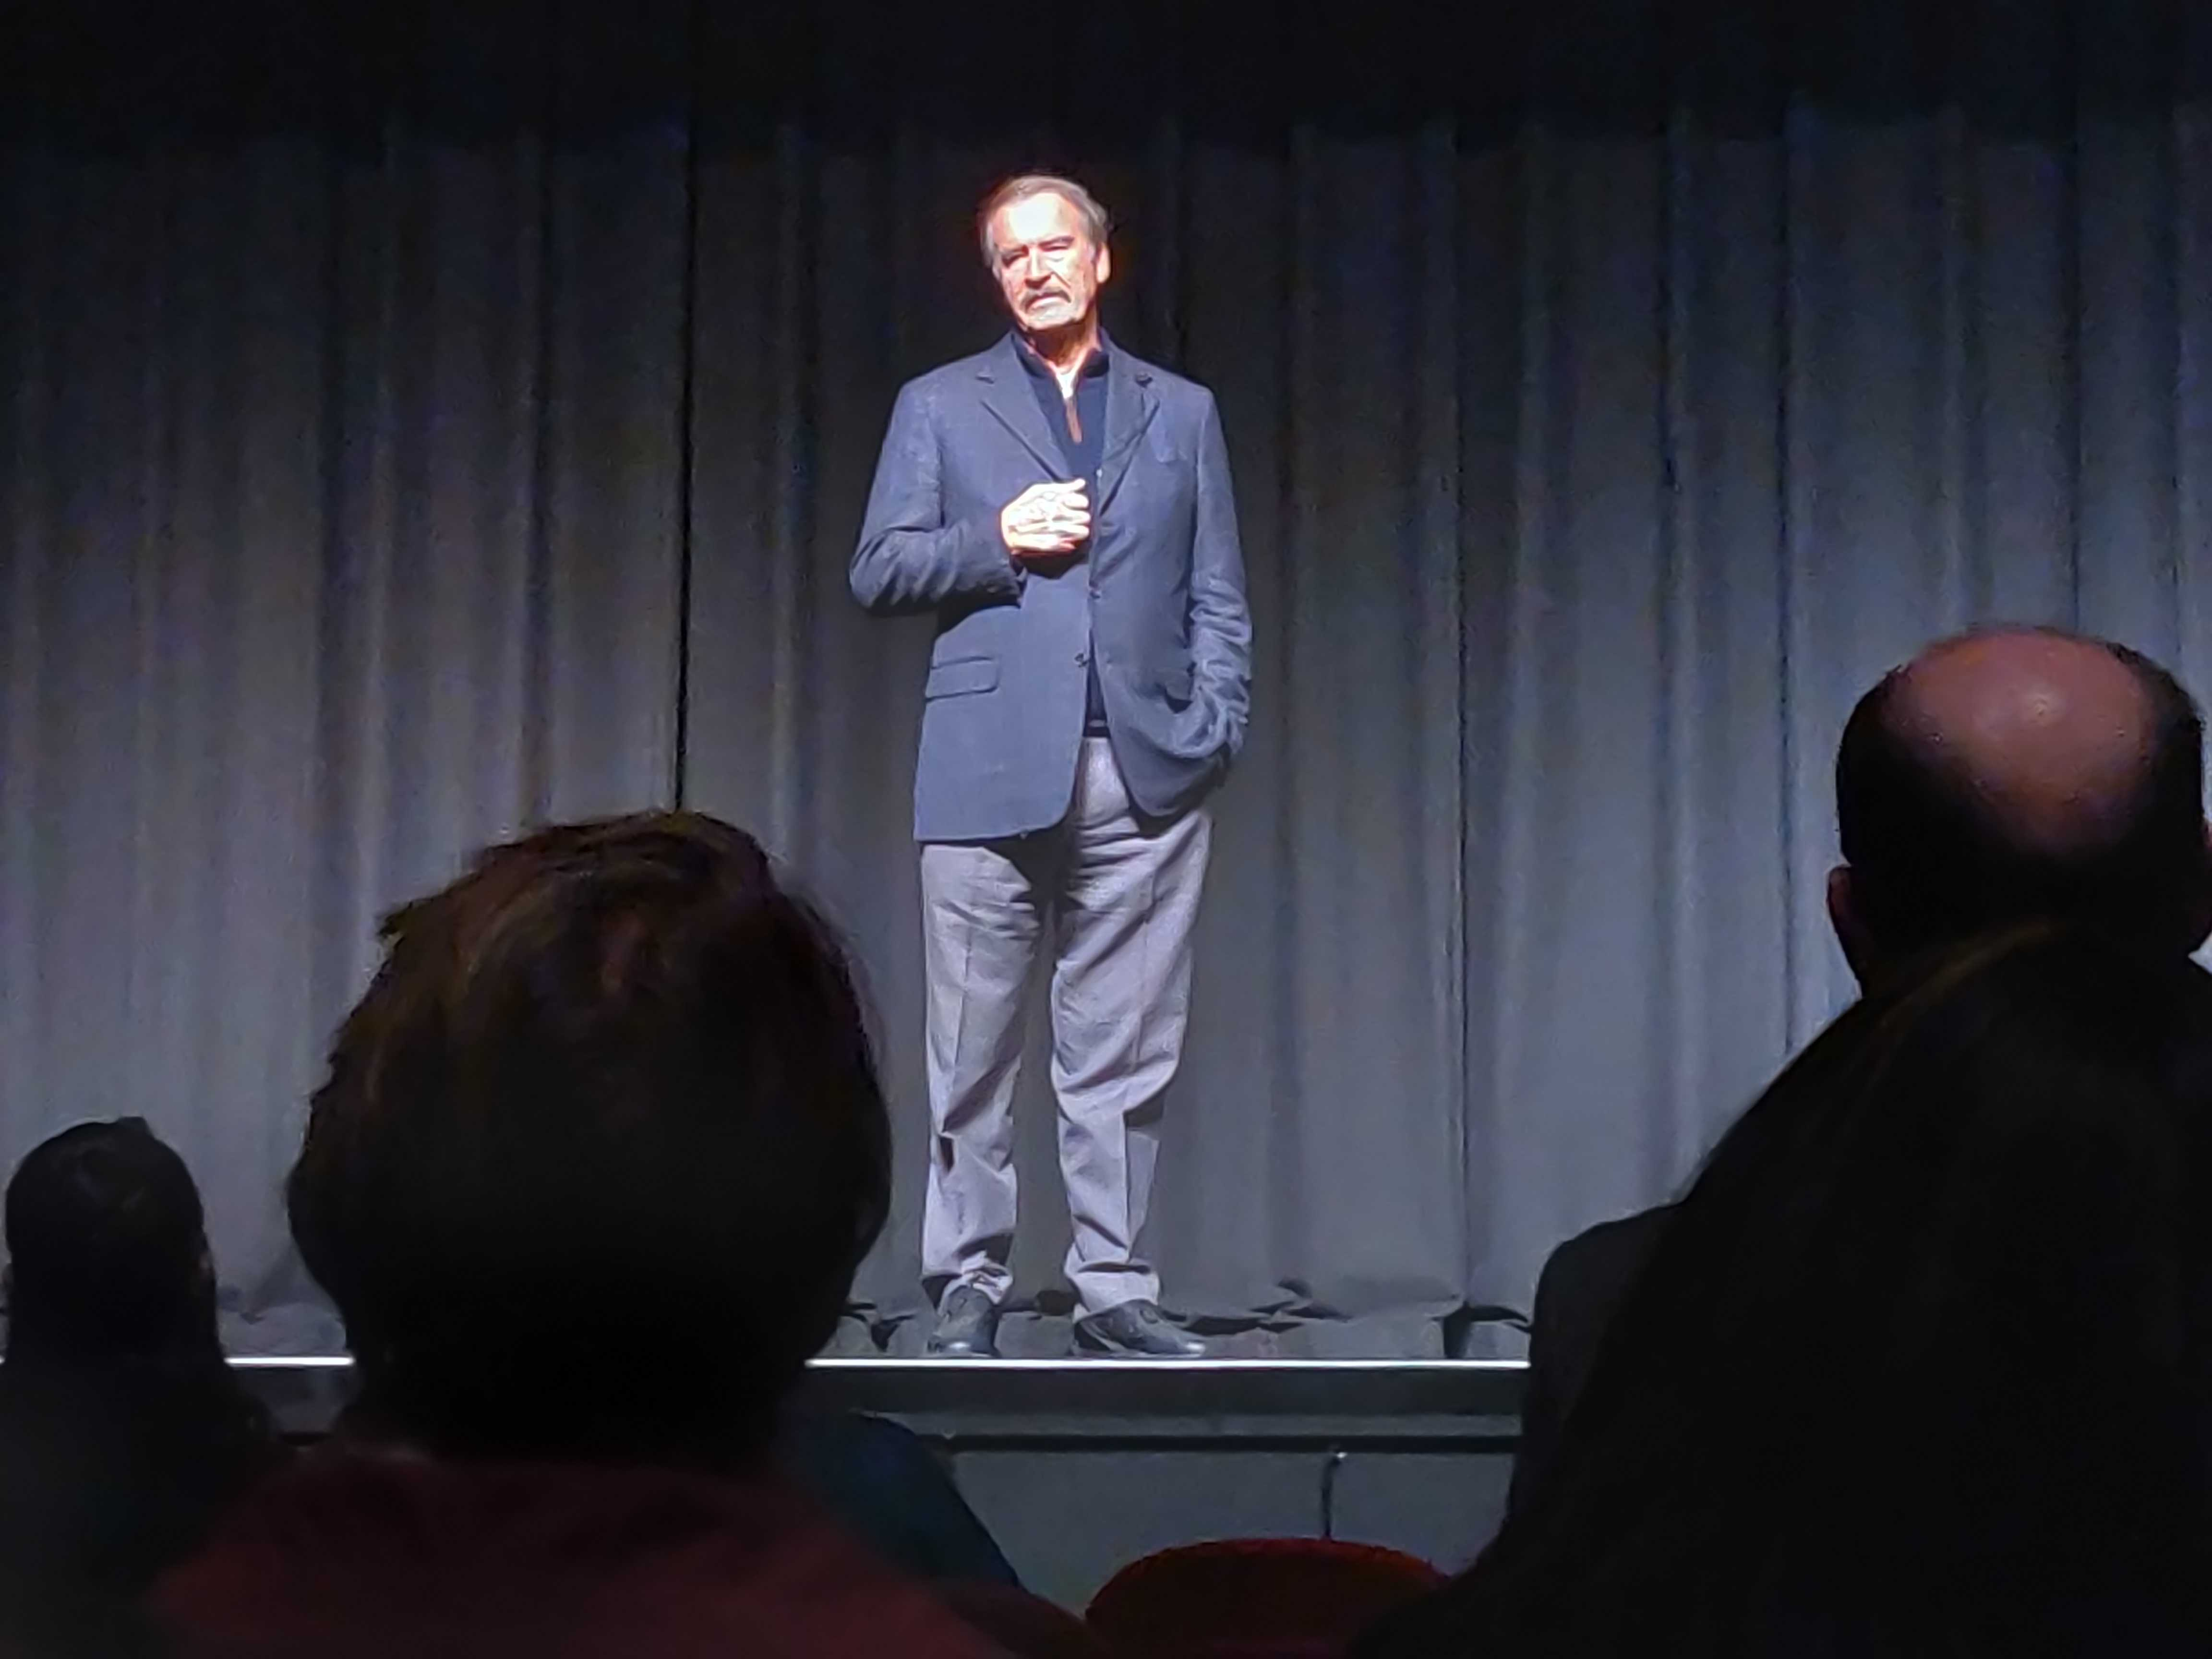 Vicente Fox speaks at Kingsbury Hall on Feb. 12, 2019 (Courtesy of Nick Cockrell )